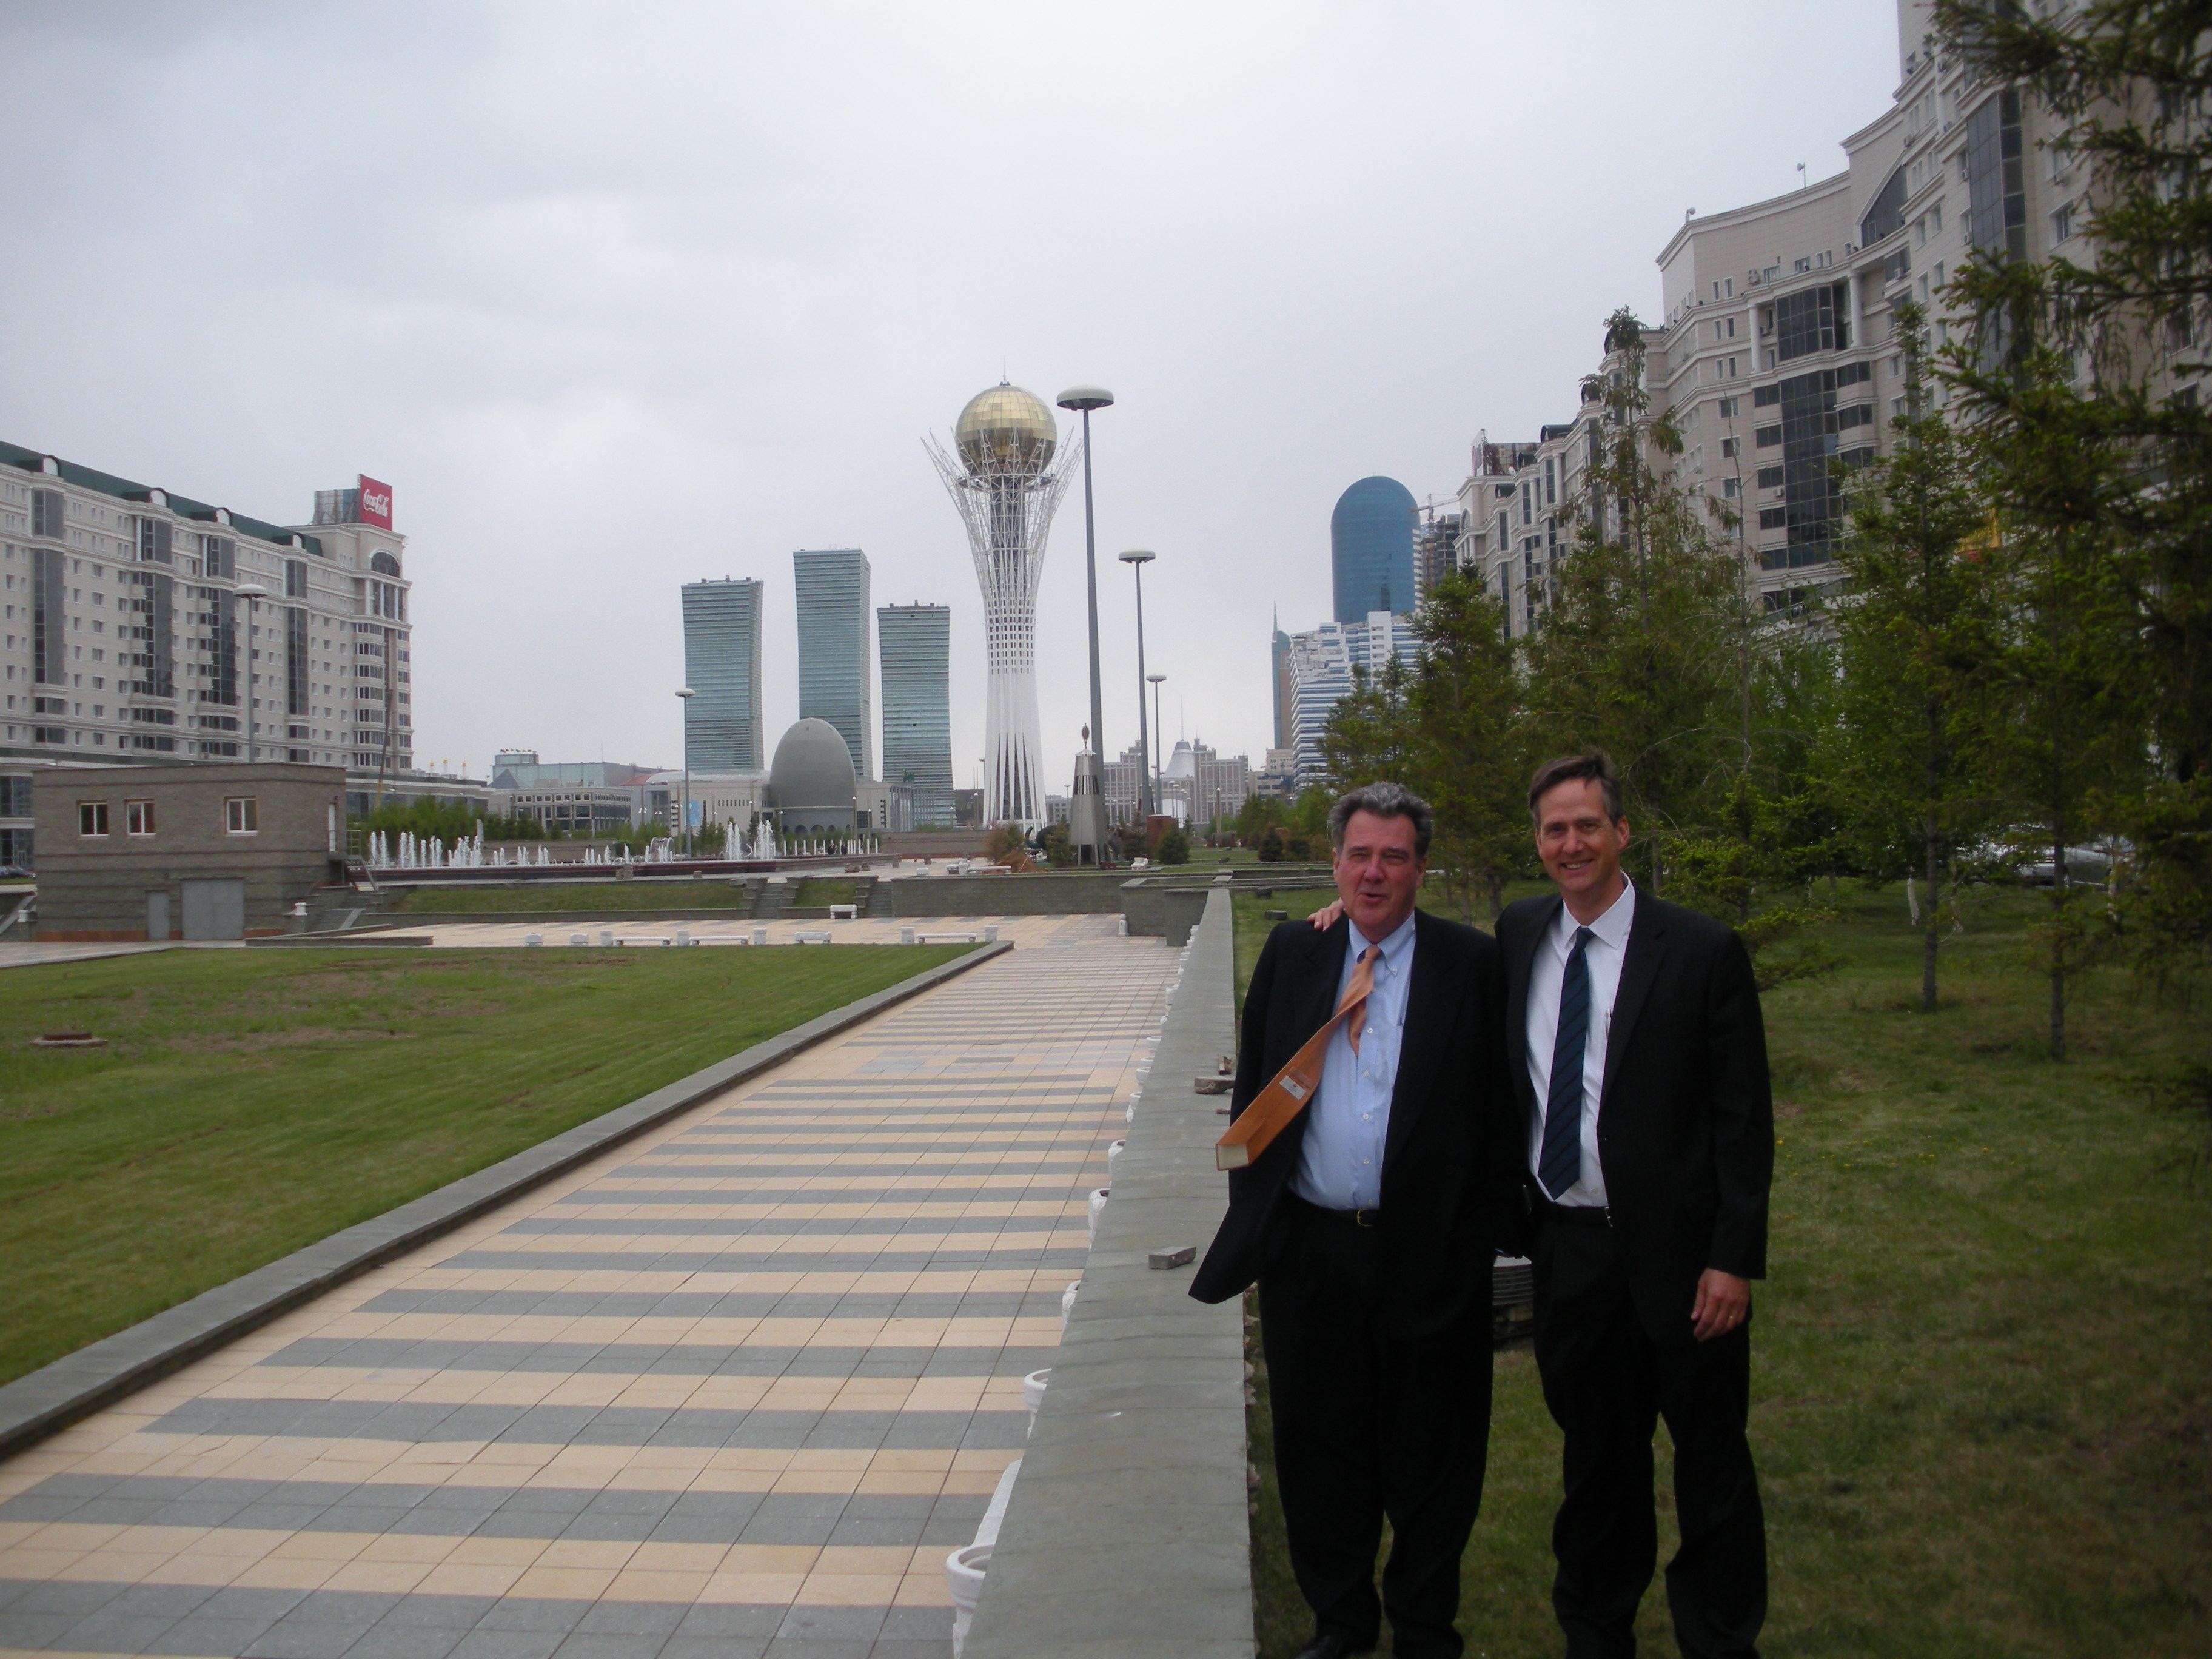 Professors Alan Ruby and Matt Hartley in Kazakhstan.